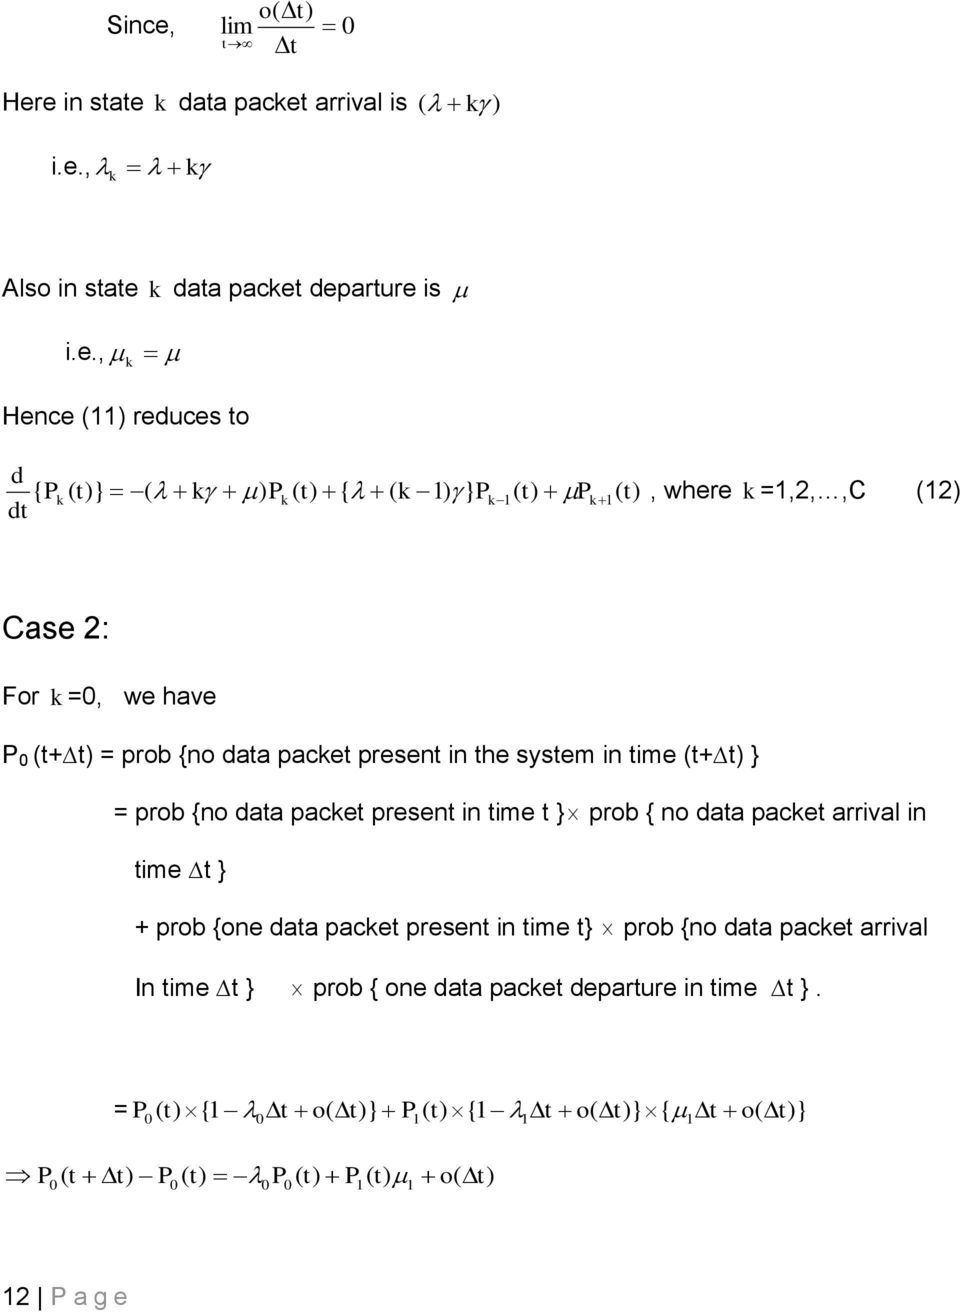 e i state data pacet arrival is i.e., Also i state data pacet departure is i.e., Hece reduces to d dt { t t} t { } t,